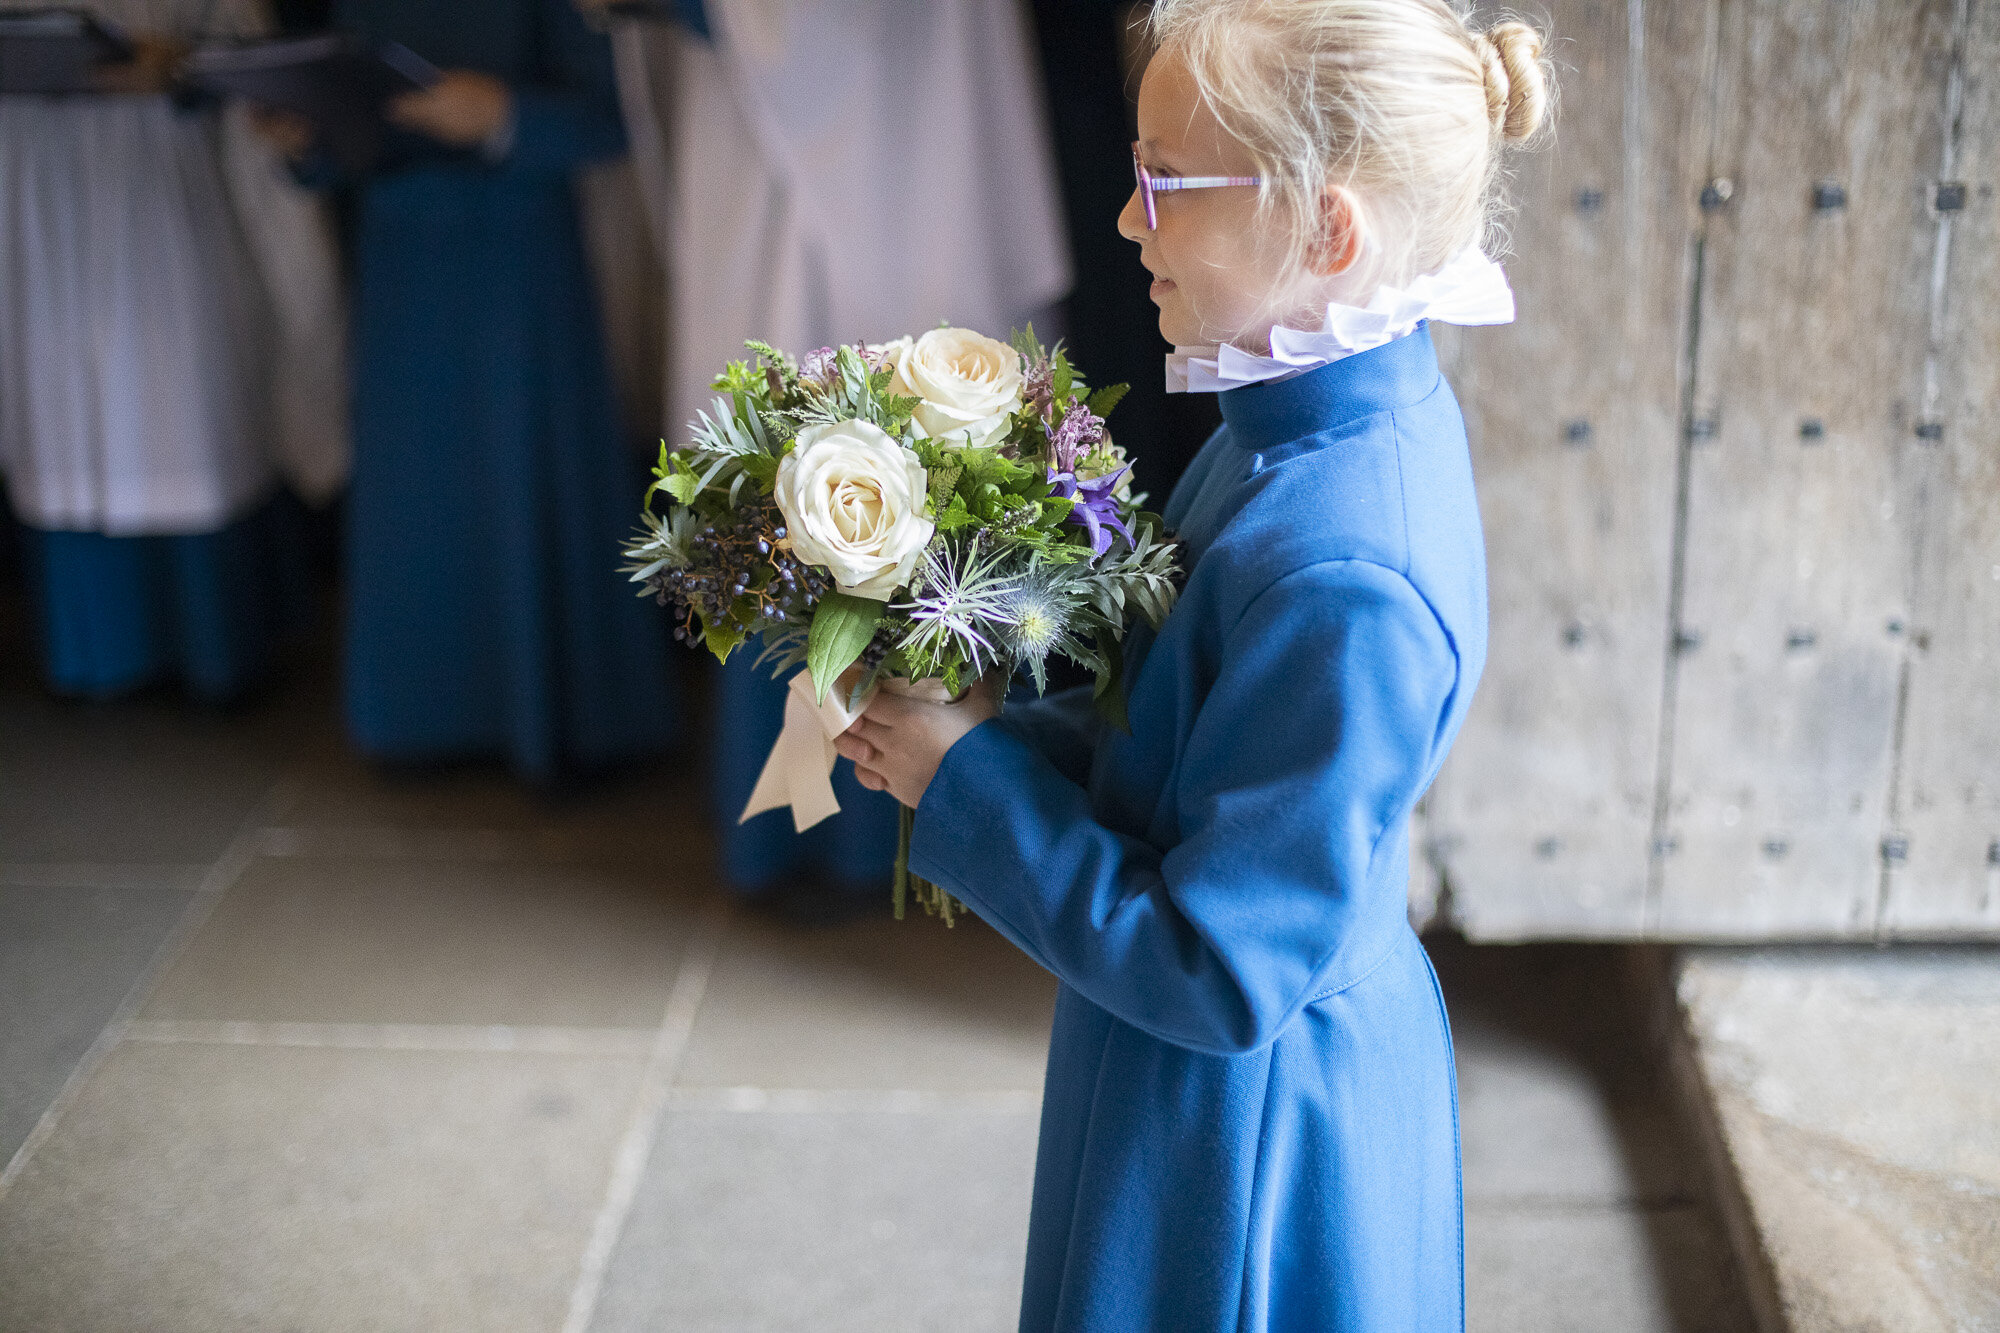 The Countess of Wessex visits Wells Cathedral Chorister Trust - September 2019 27.jpg